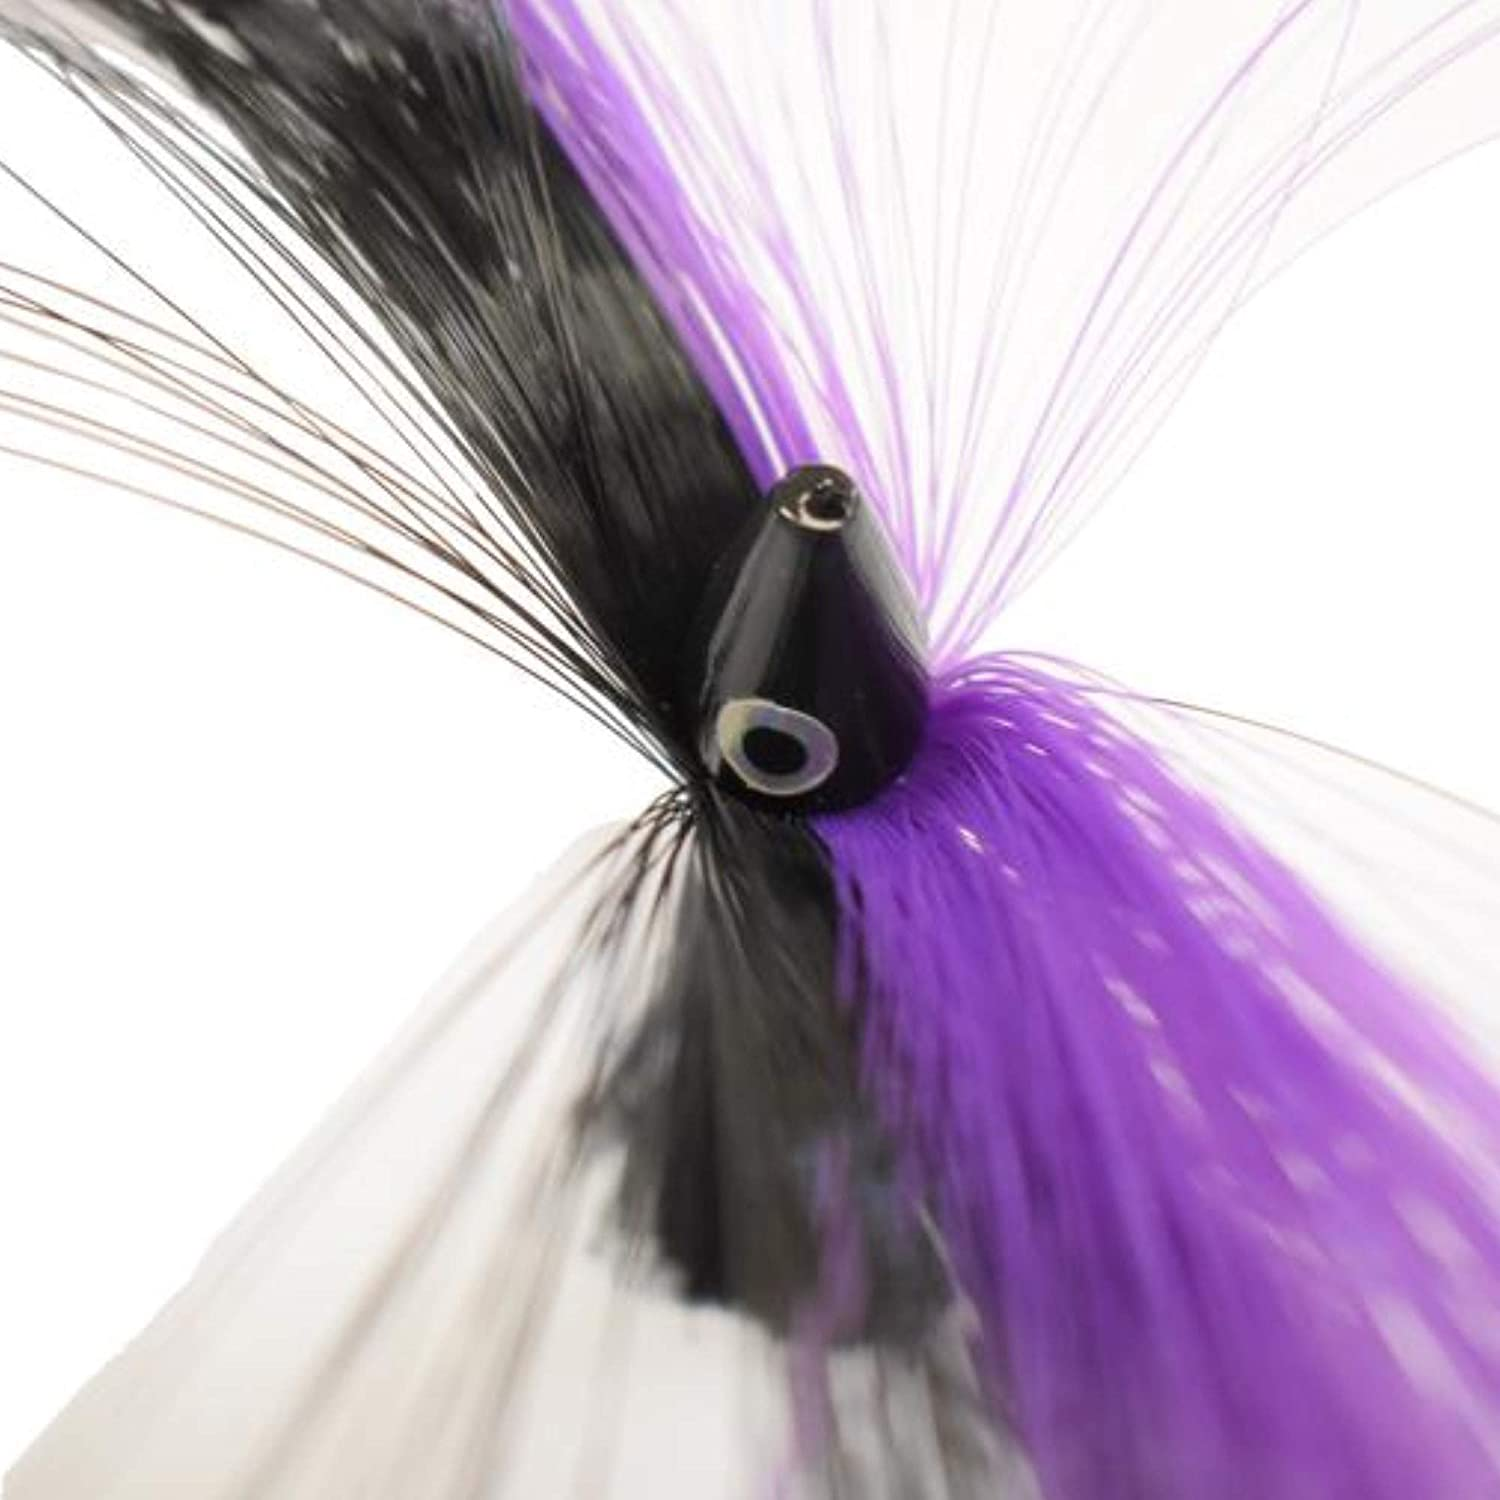 EAT MY TACKLE 5 Sea Witch Saltwater Fishing Lures Purple and Black 8